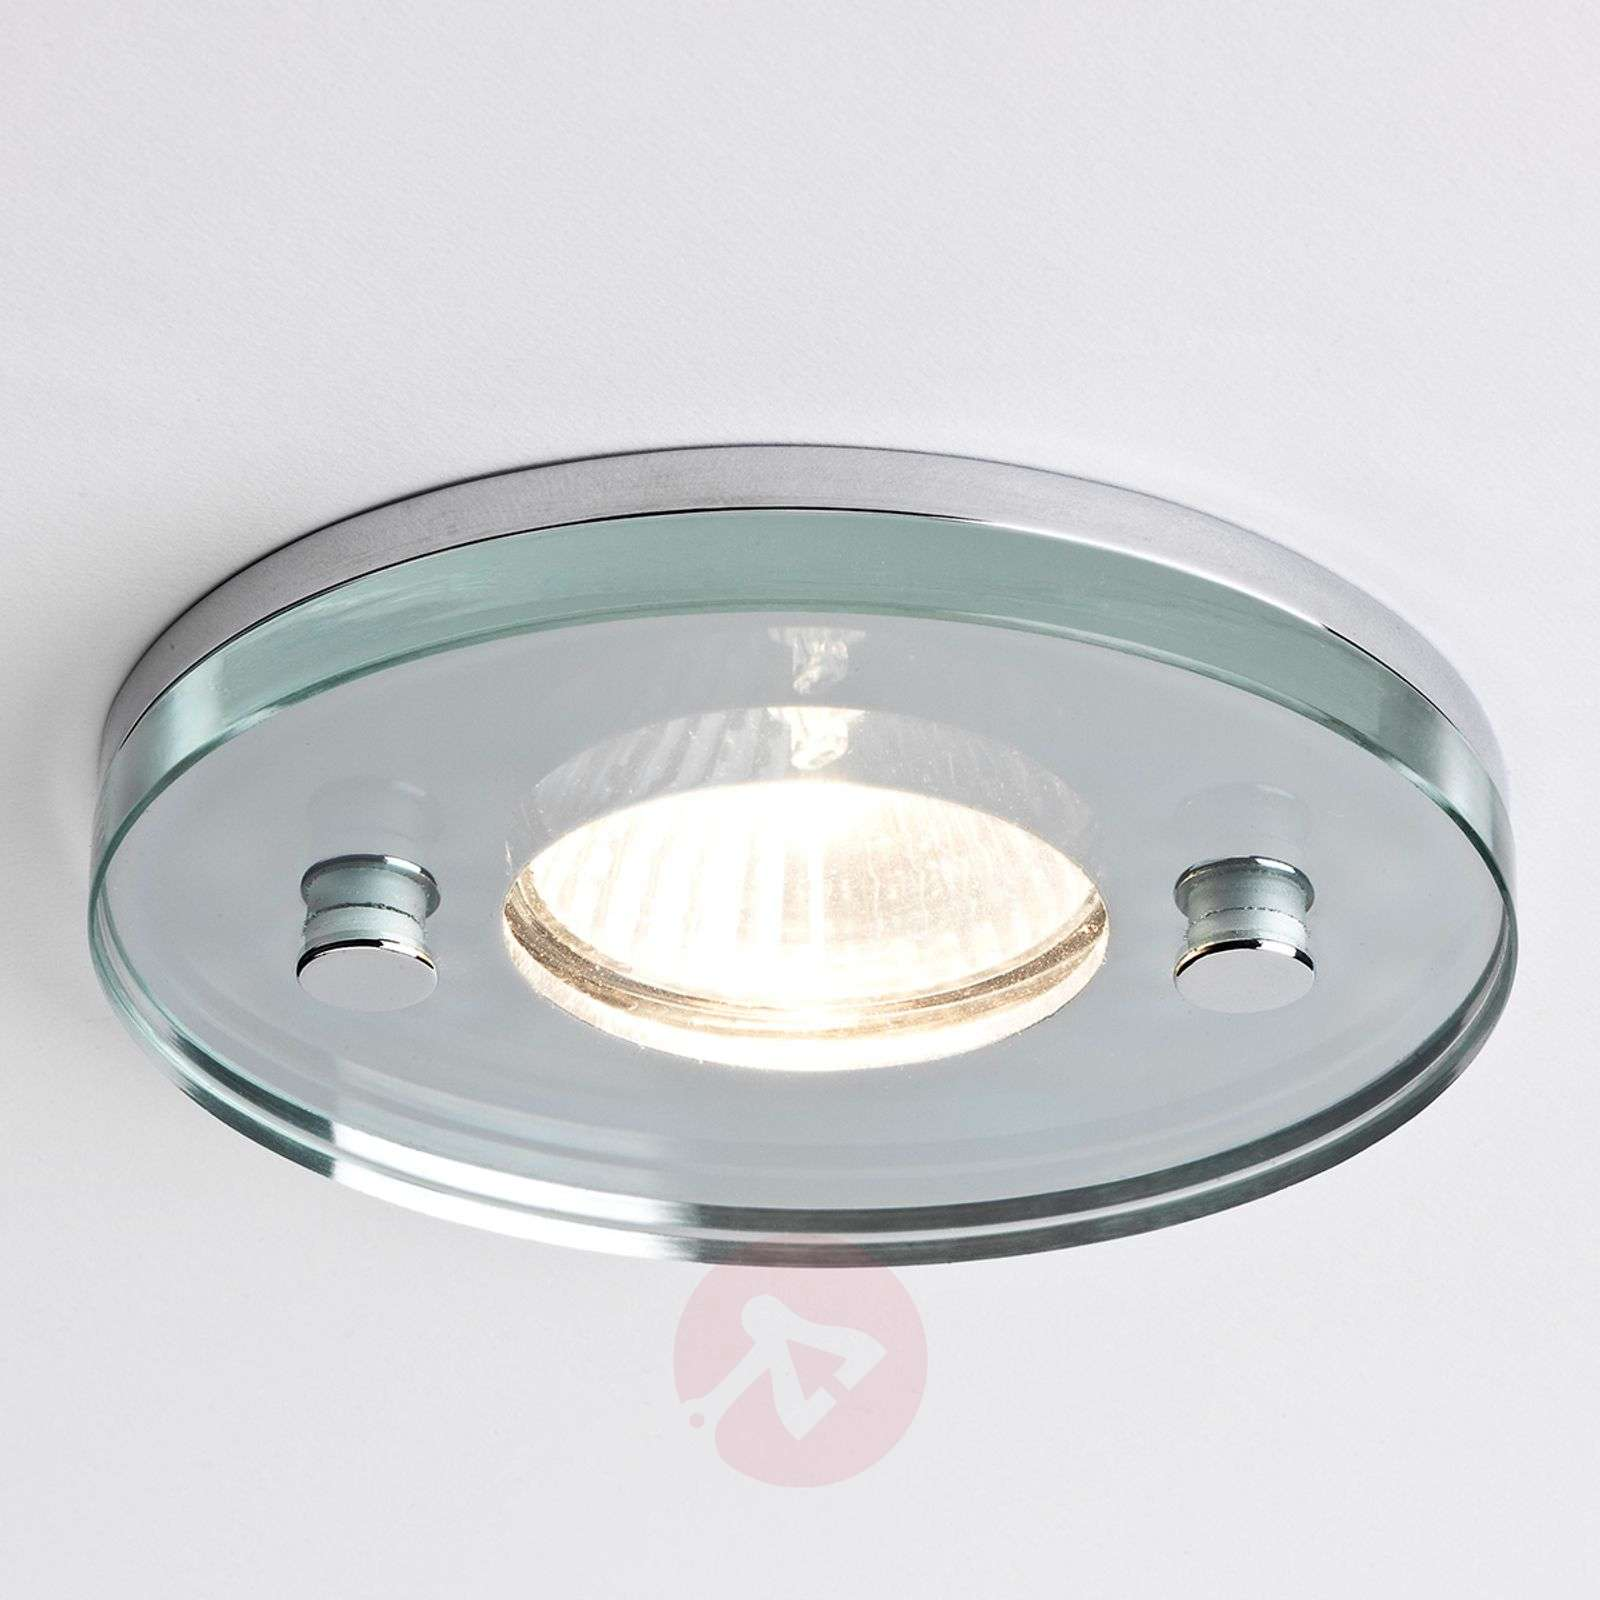 Ice Round Built-In Ceiling Light Attractive-1020106-02